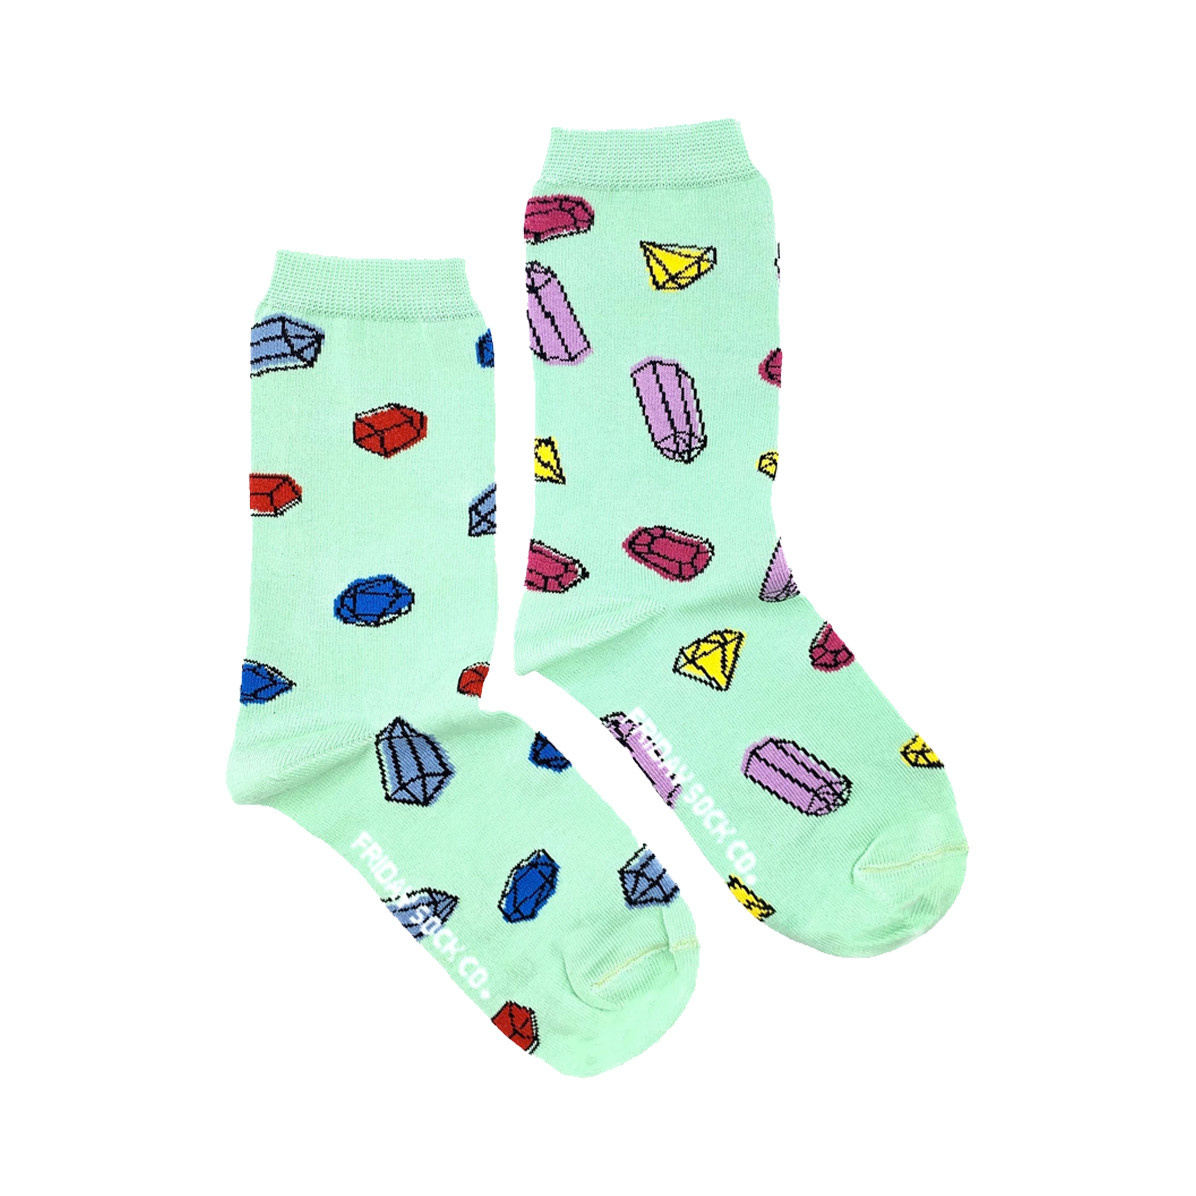 Friday Sock Co. Friday Sock Co. Women's Gemstones Crew